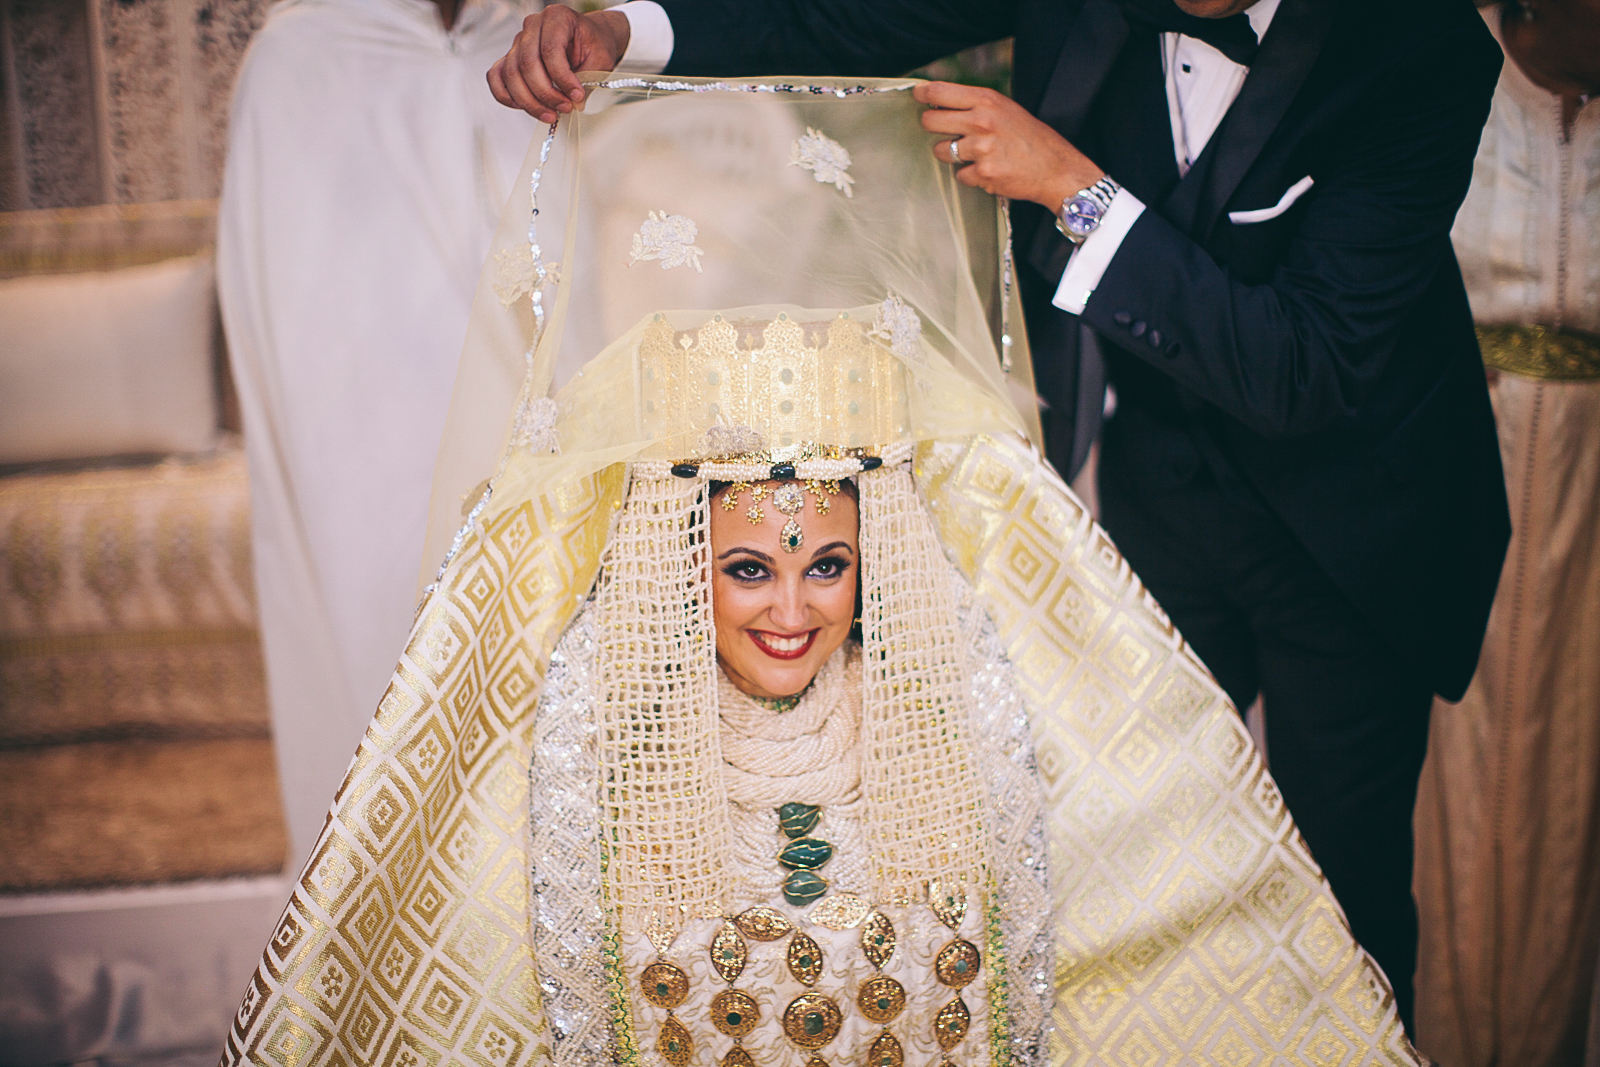 traditional_moroccan_wedding_photographry_casablanca_morocco_houda_vivek_ebony_siovhan_bokeh_photography_108.jpg